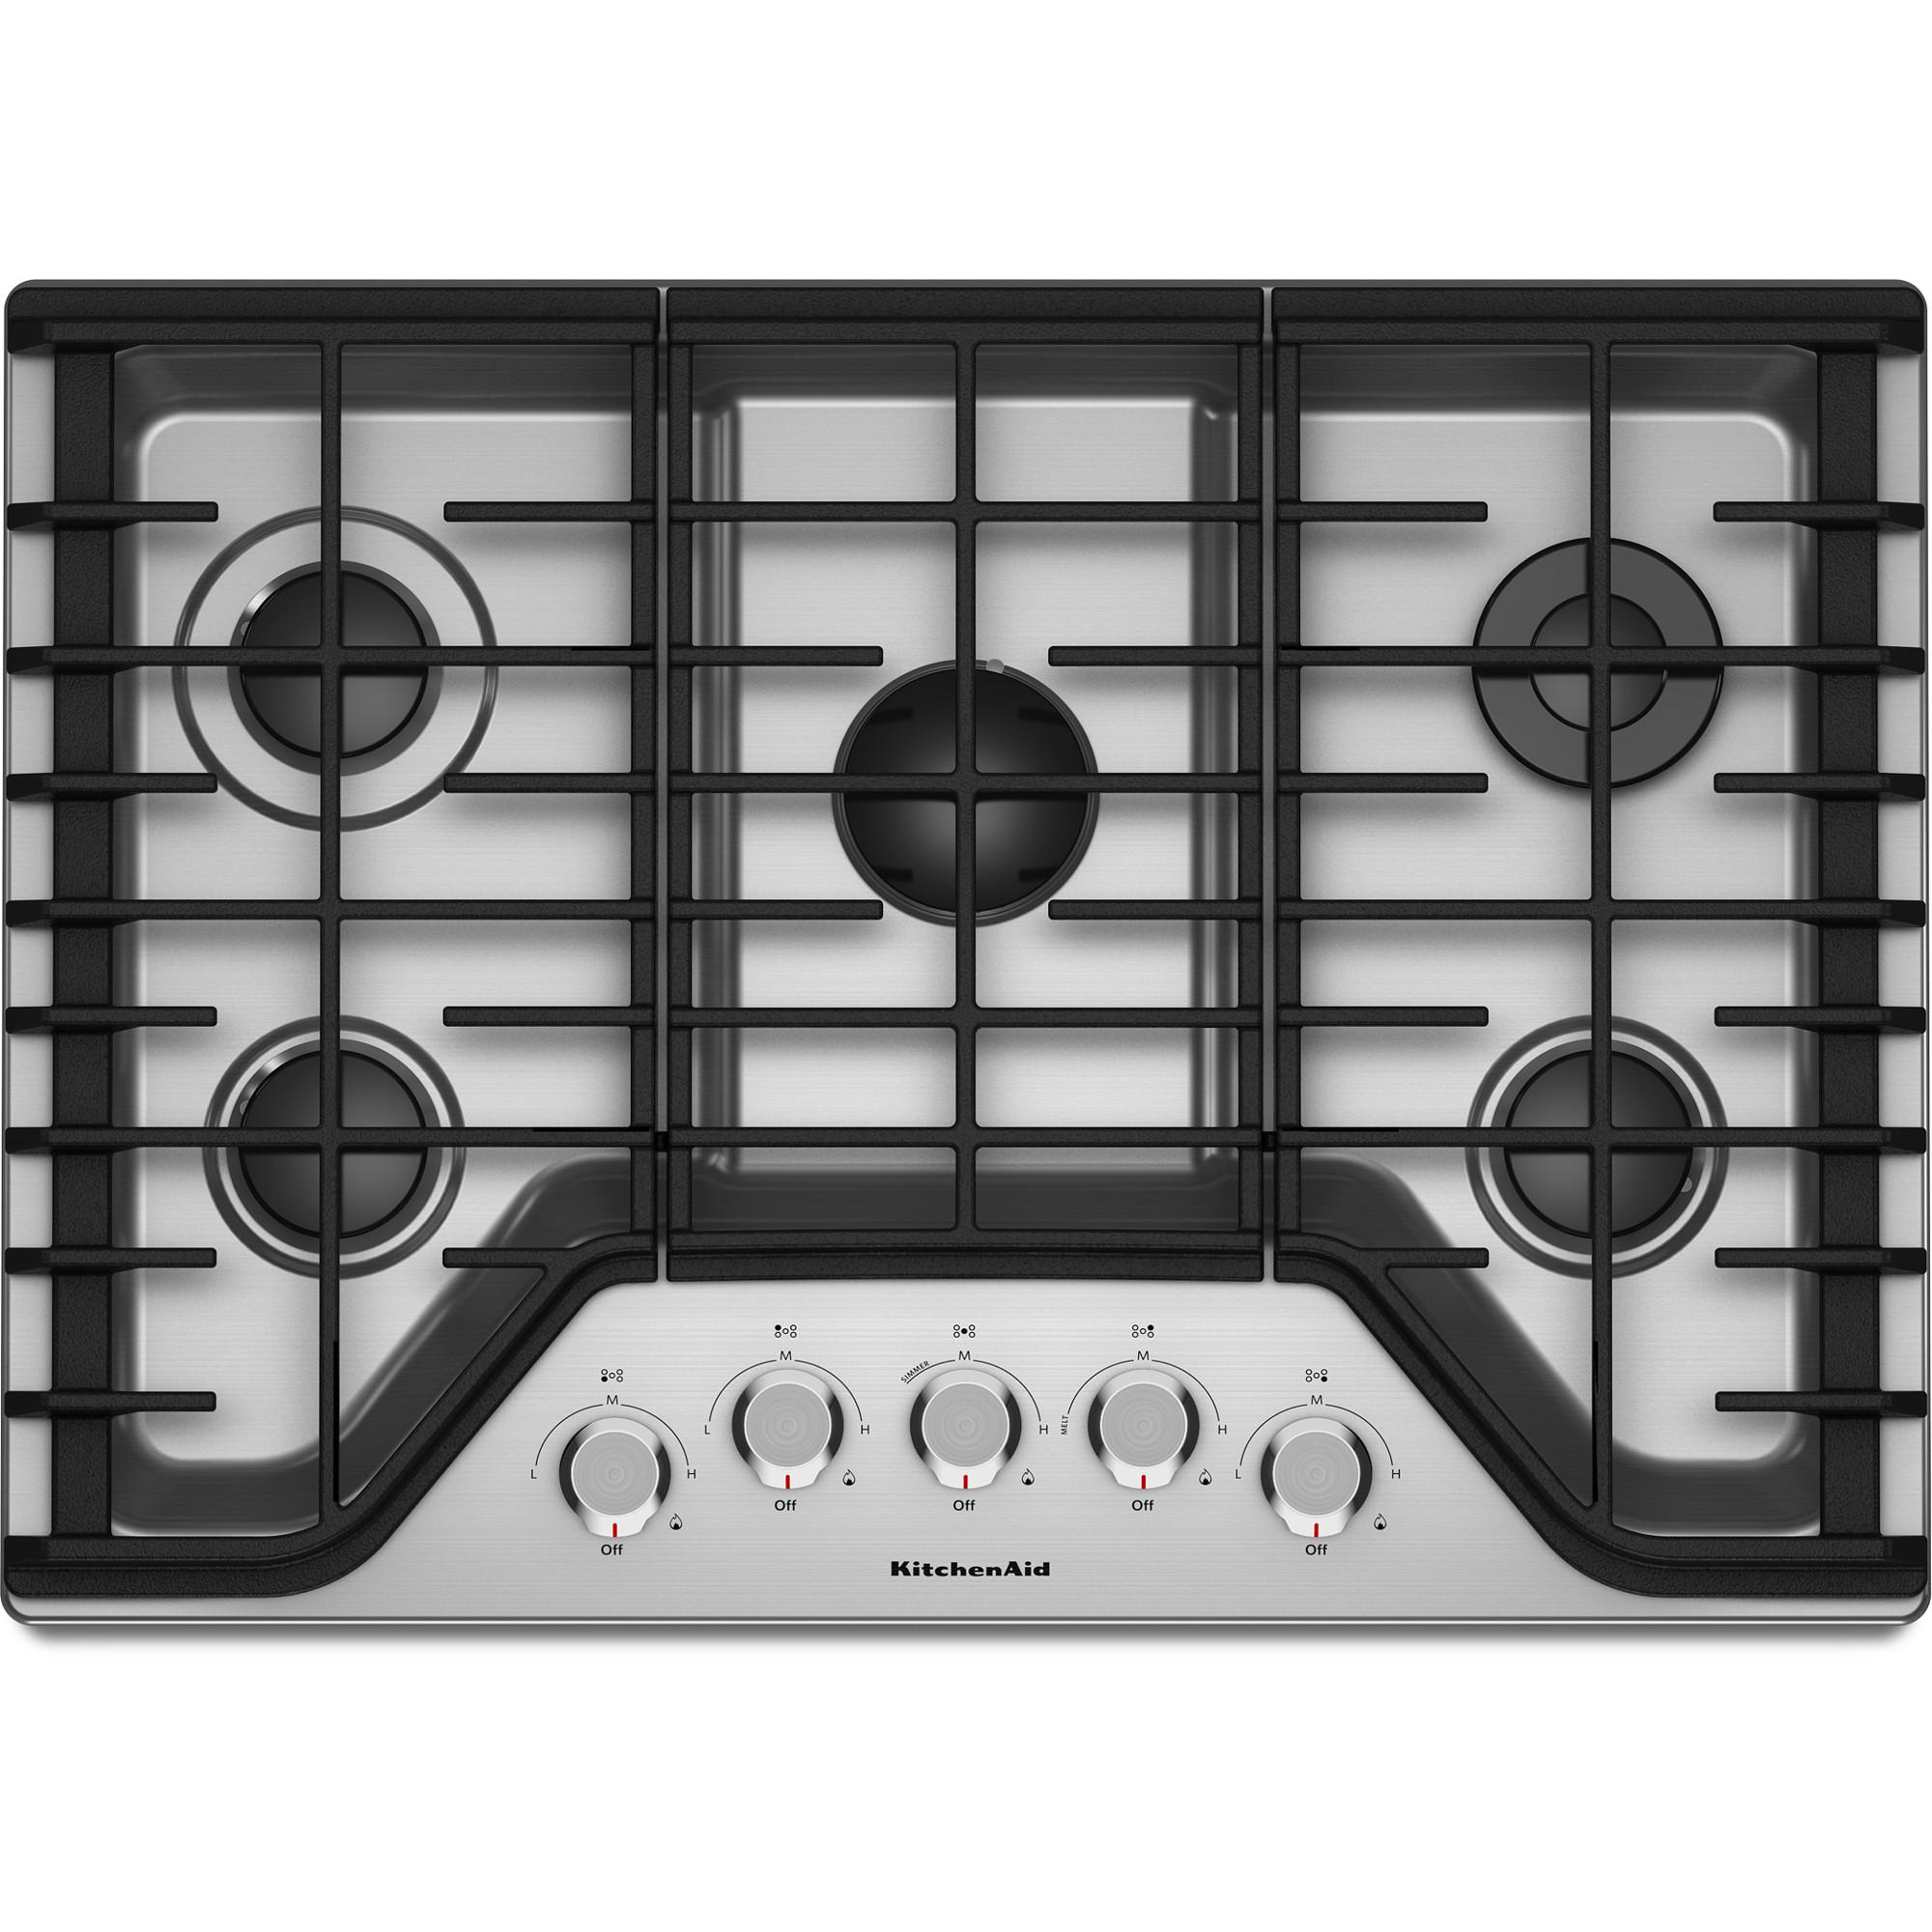 KitchenAid KCGS350ESS 30 Gas Cooktop w/ 5 Burners - Stainless Steel